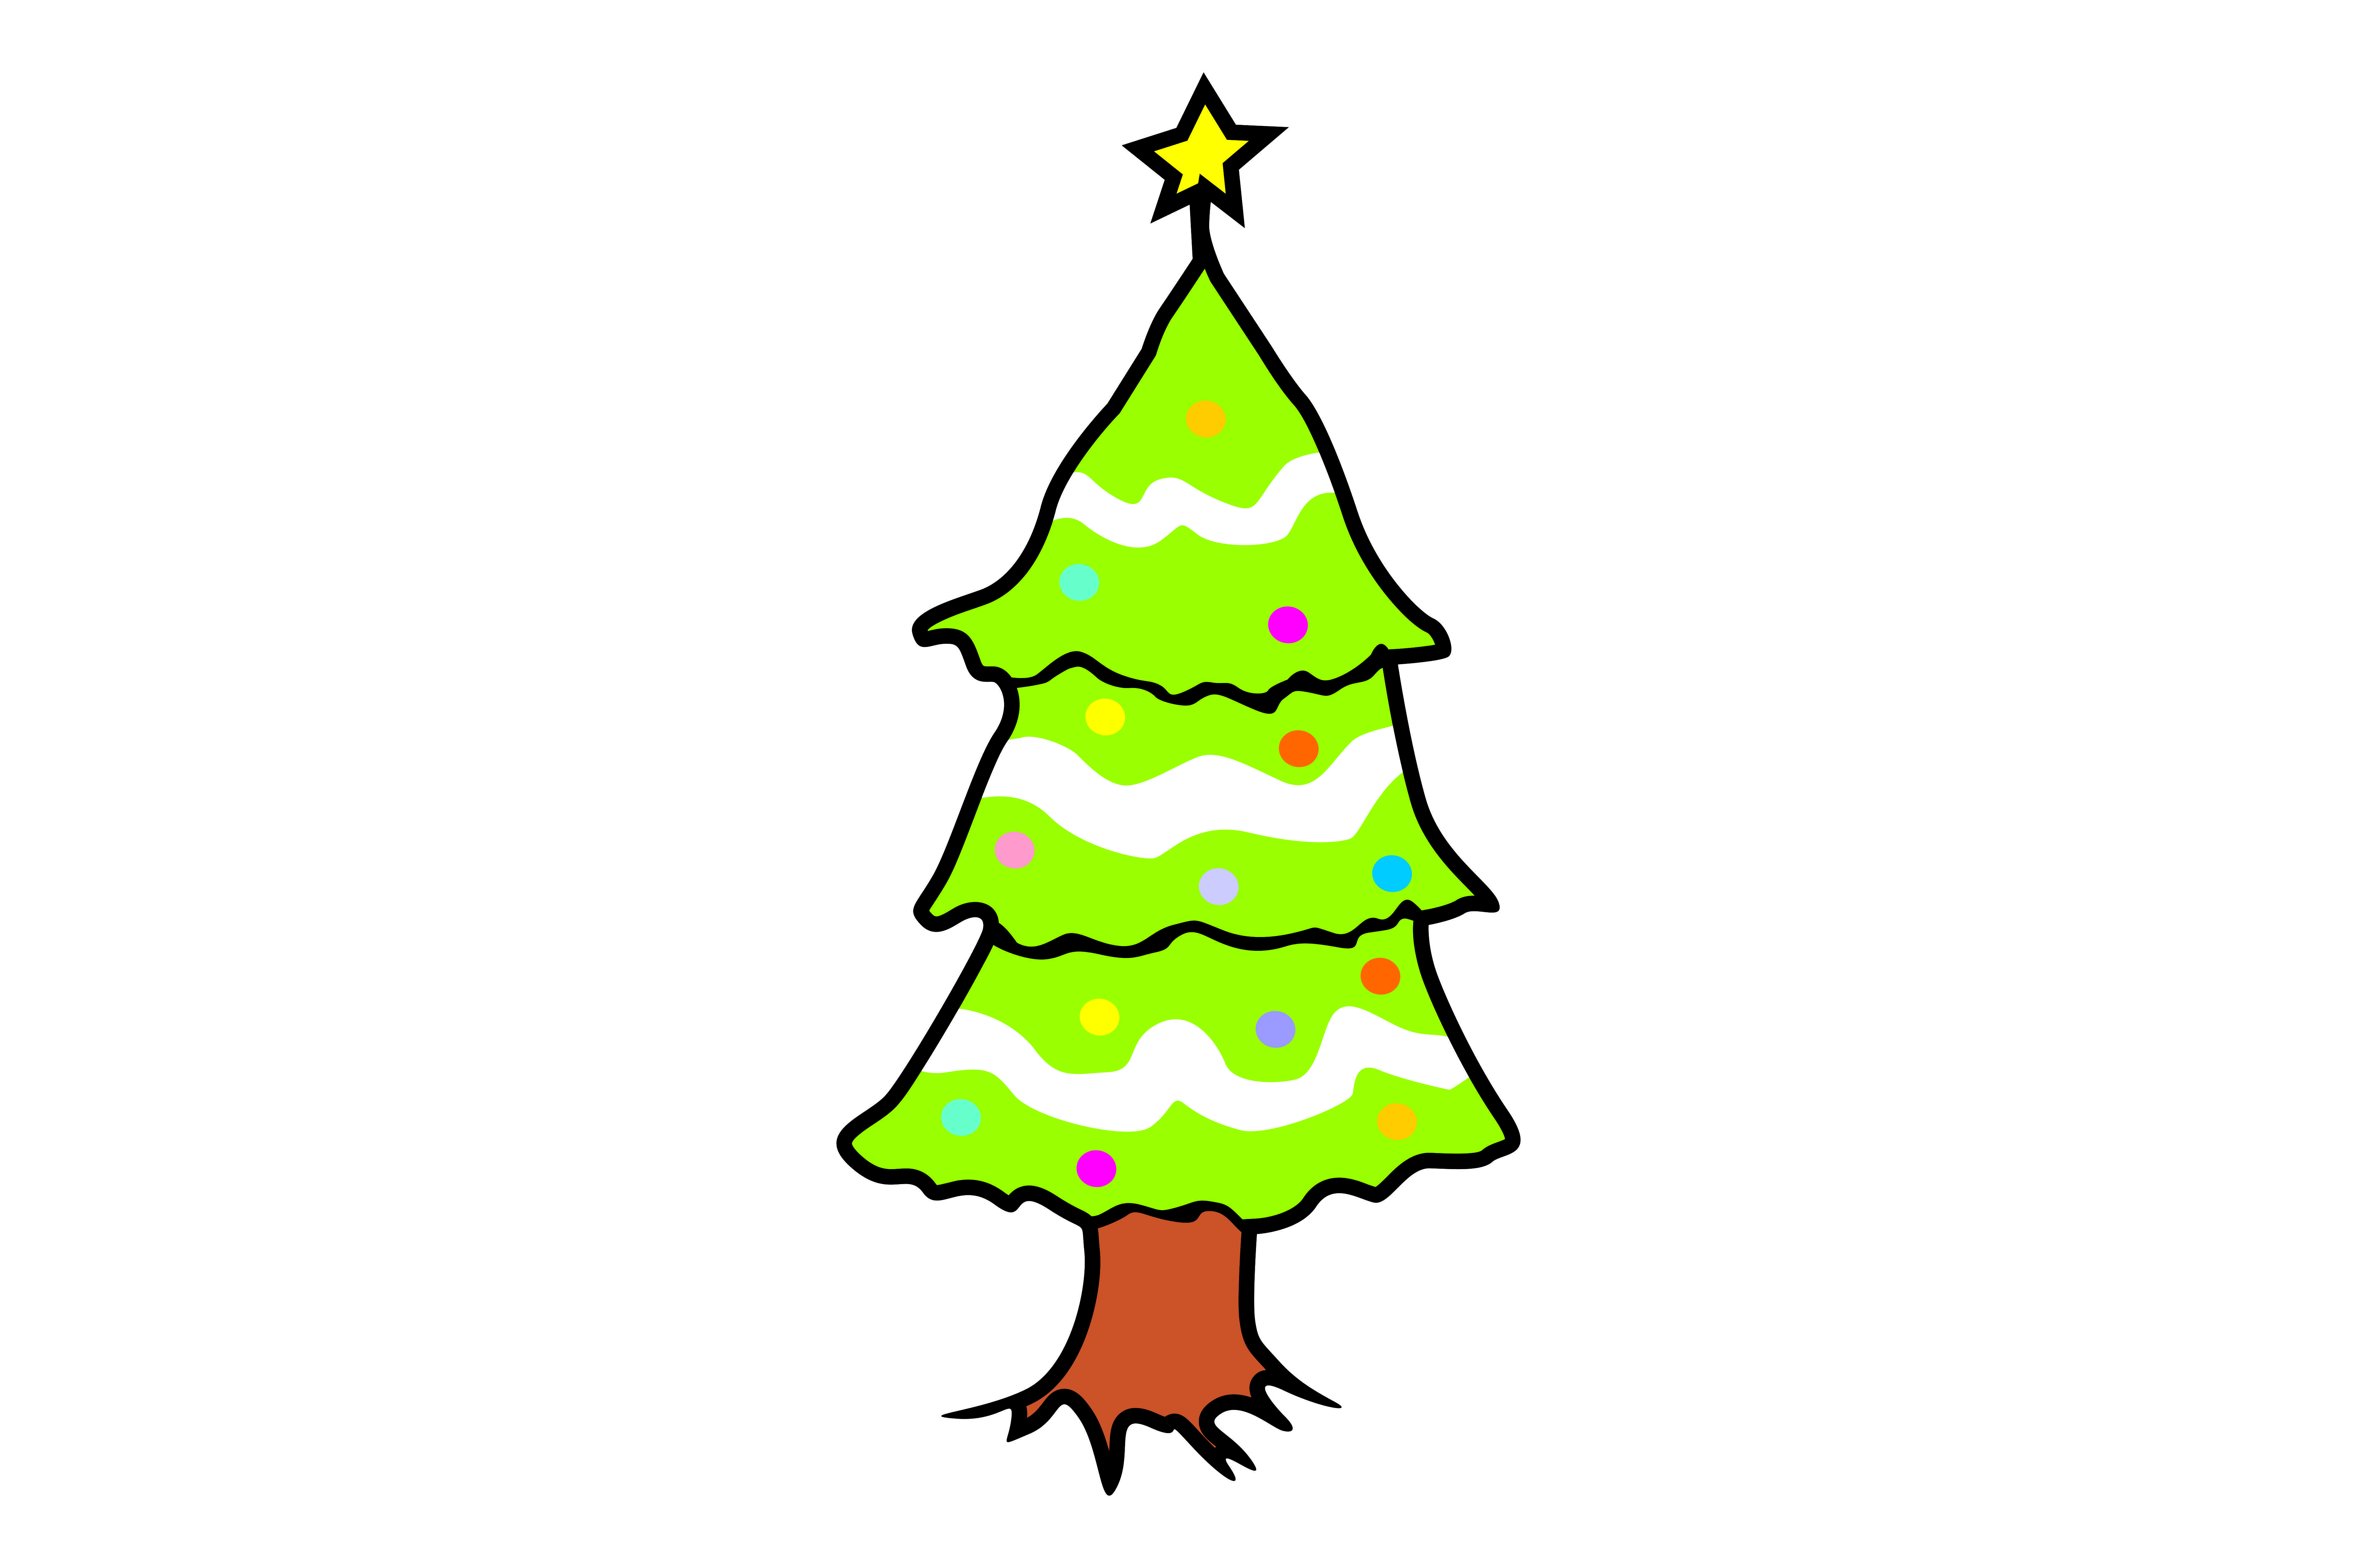 Download Free Christmas Item Tree Vector Graphic By Arief Sapta Adjie for Cricut Explore, Silhouette and other cutting machines.